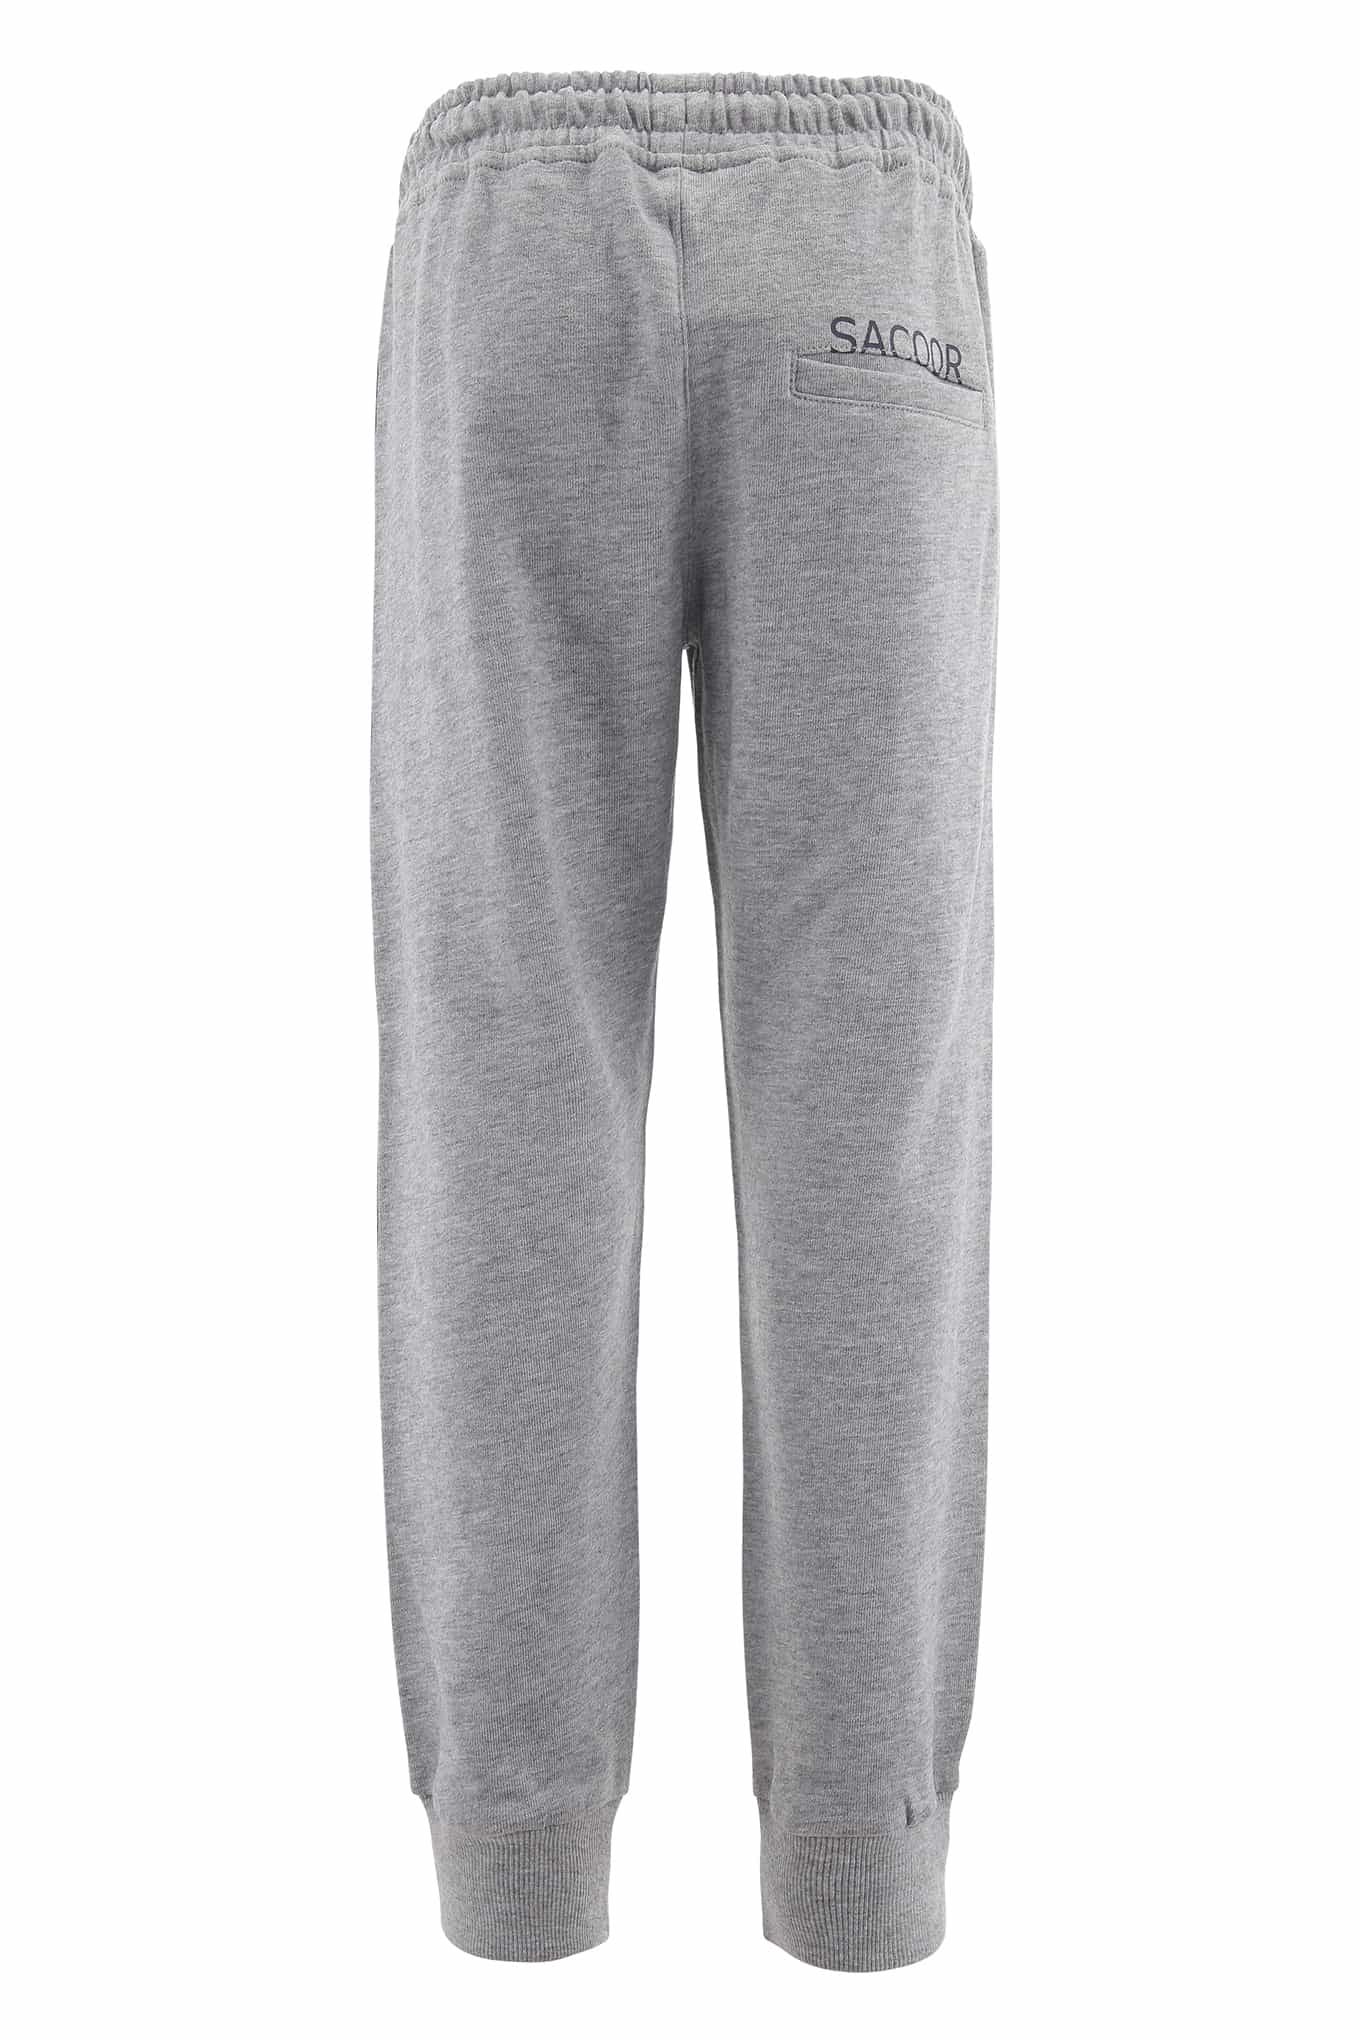 Sportswear Trousers Light Grey Sport Boy